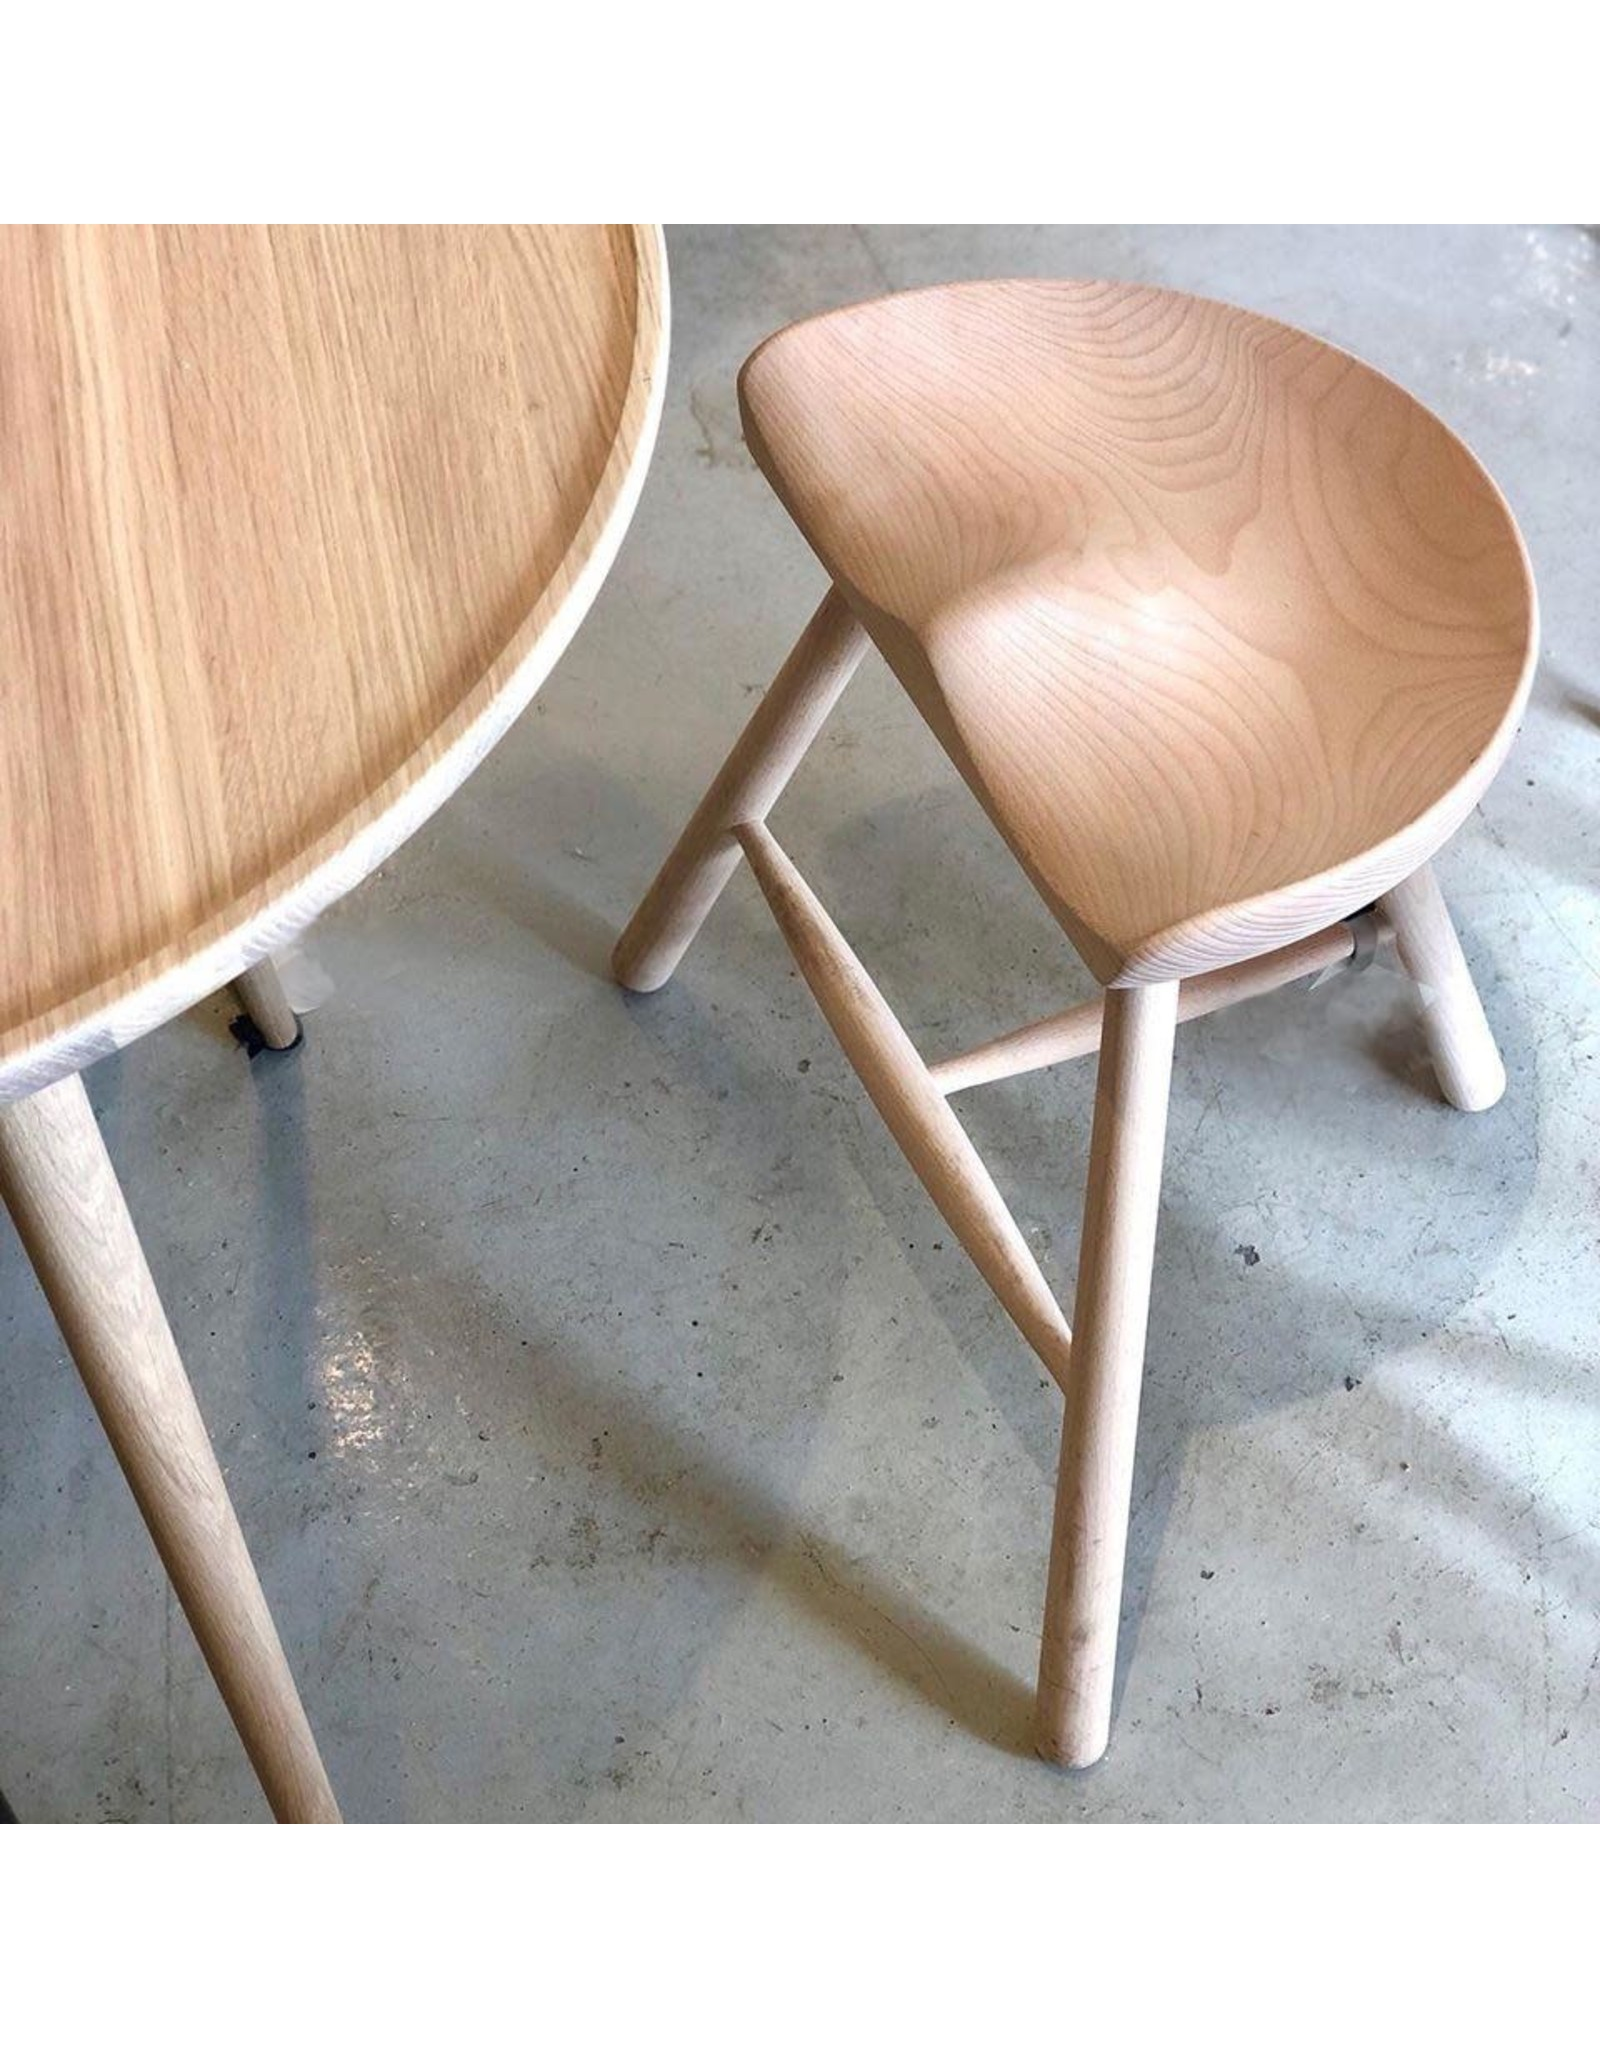 THE SHOEMAKER CHAIR IN 49CM HEIGHT